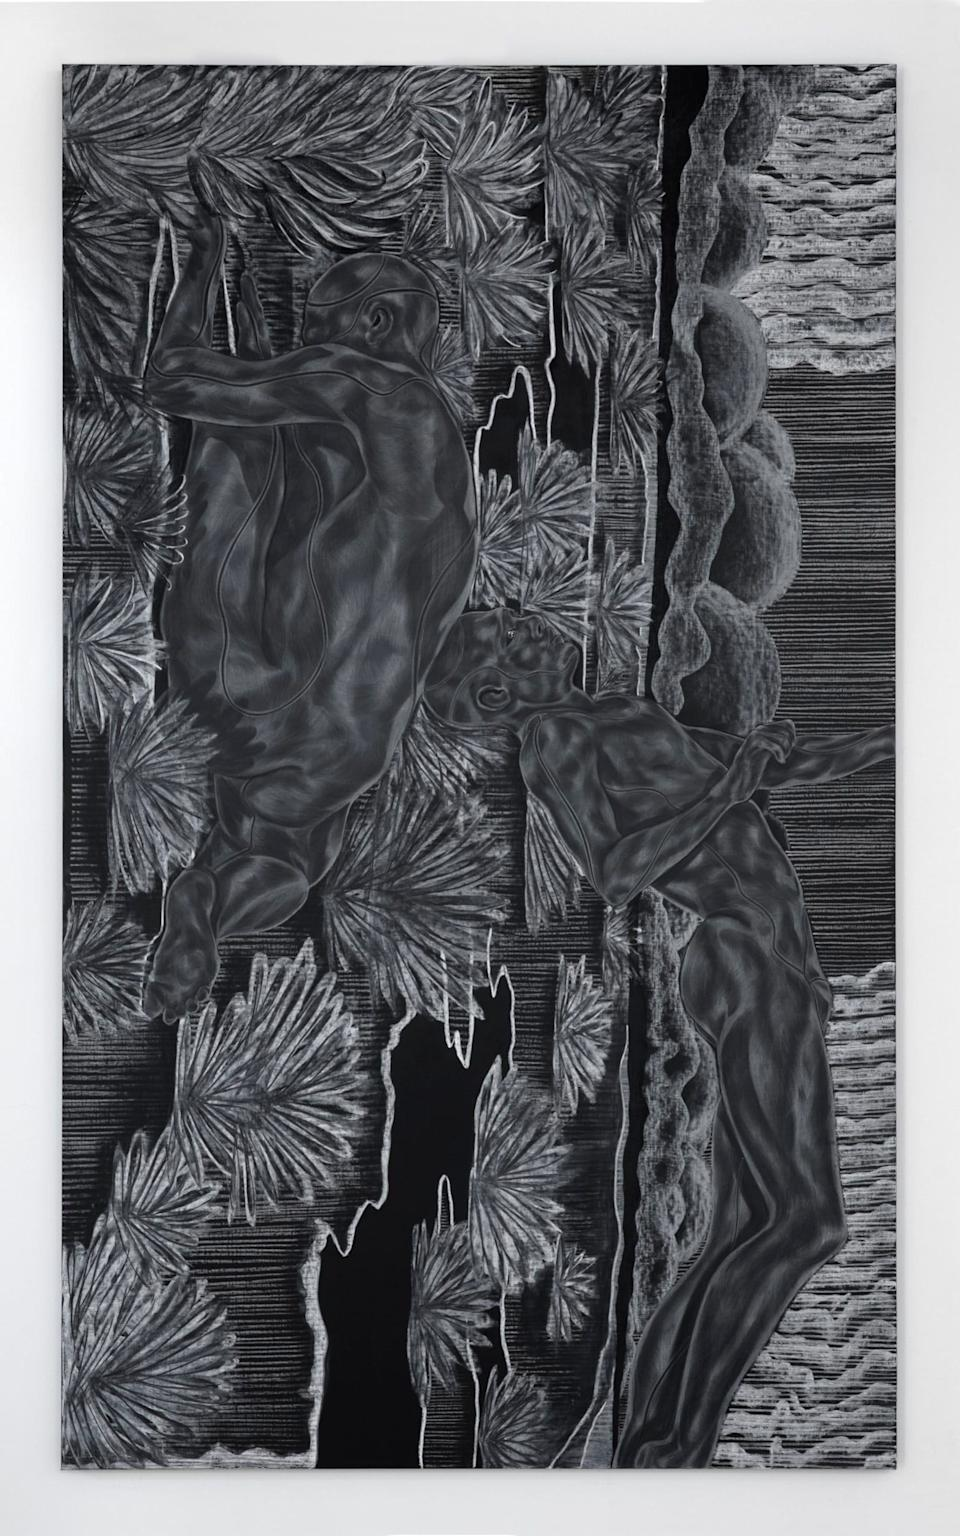 An artwork from Toyin Ojih Odutola's A Countervailing Theory - Jack Shainman Gallery, New York